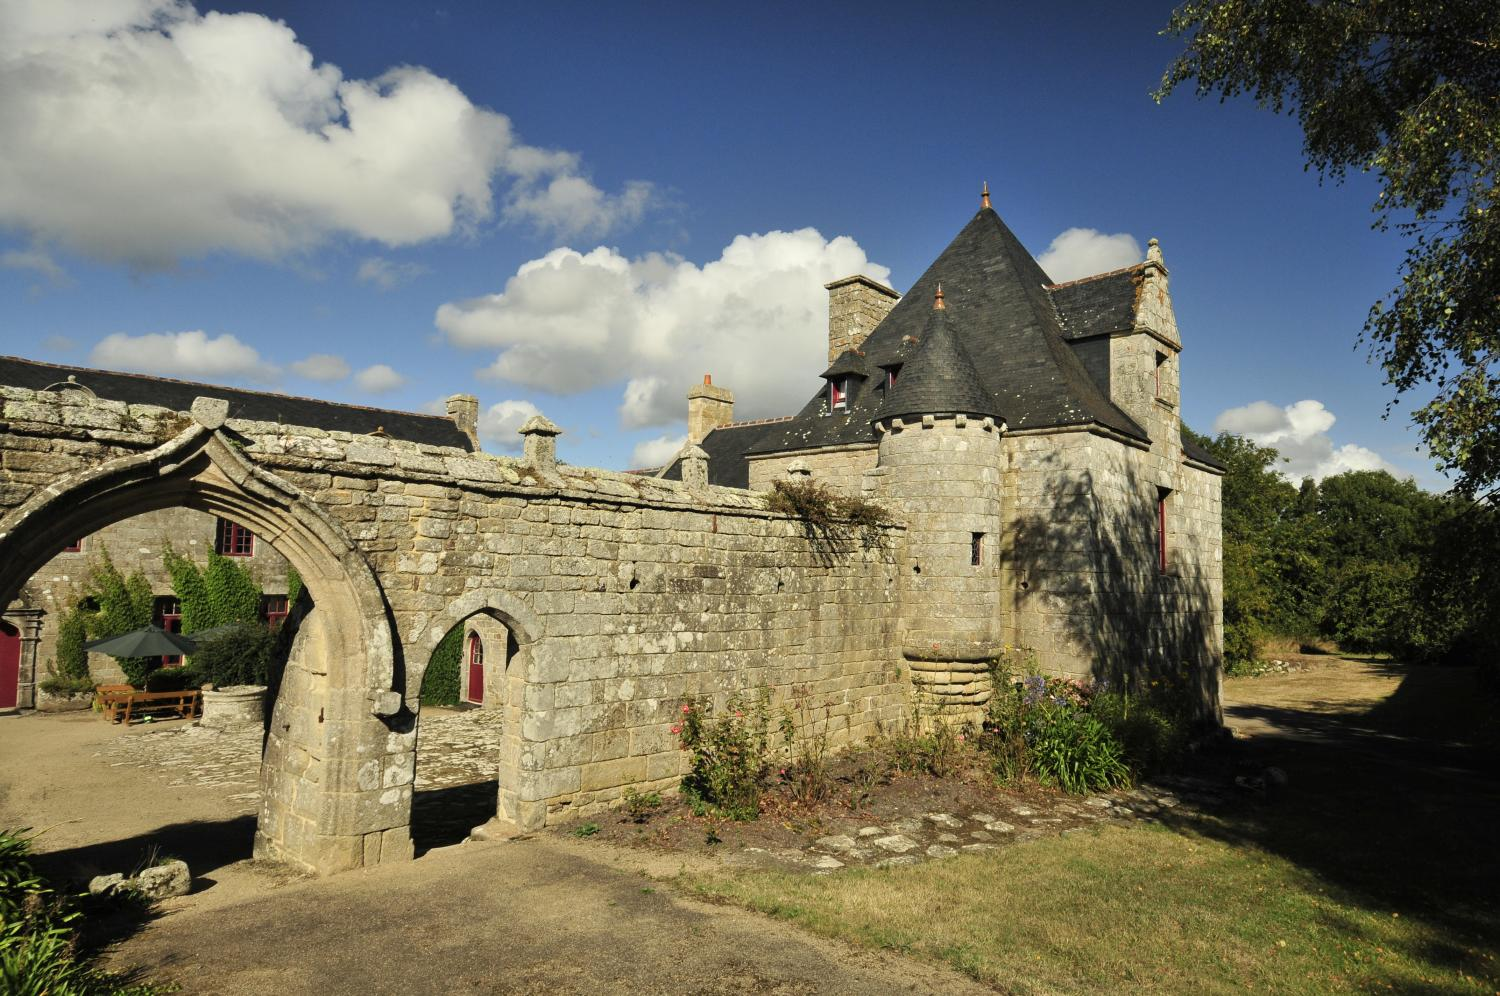 Villa exterior 2, Breton Manor - The Tower, Brittany, Audierne.